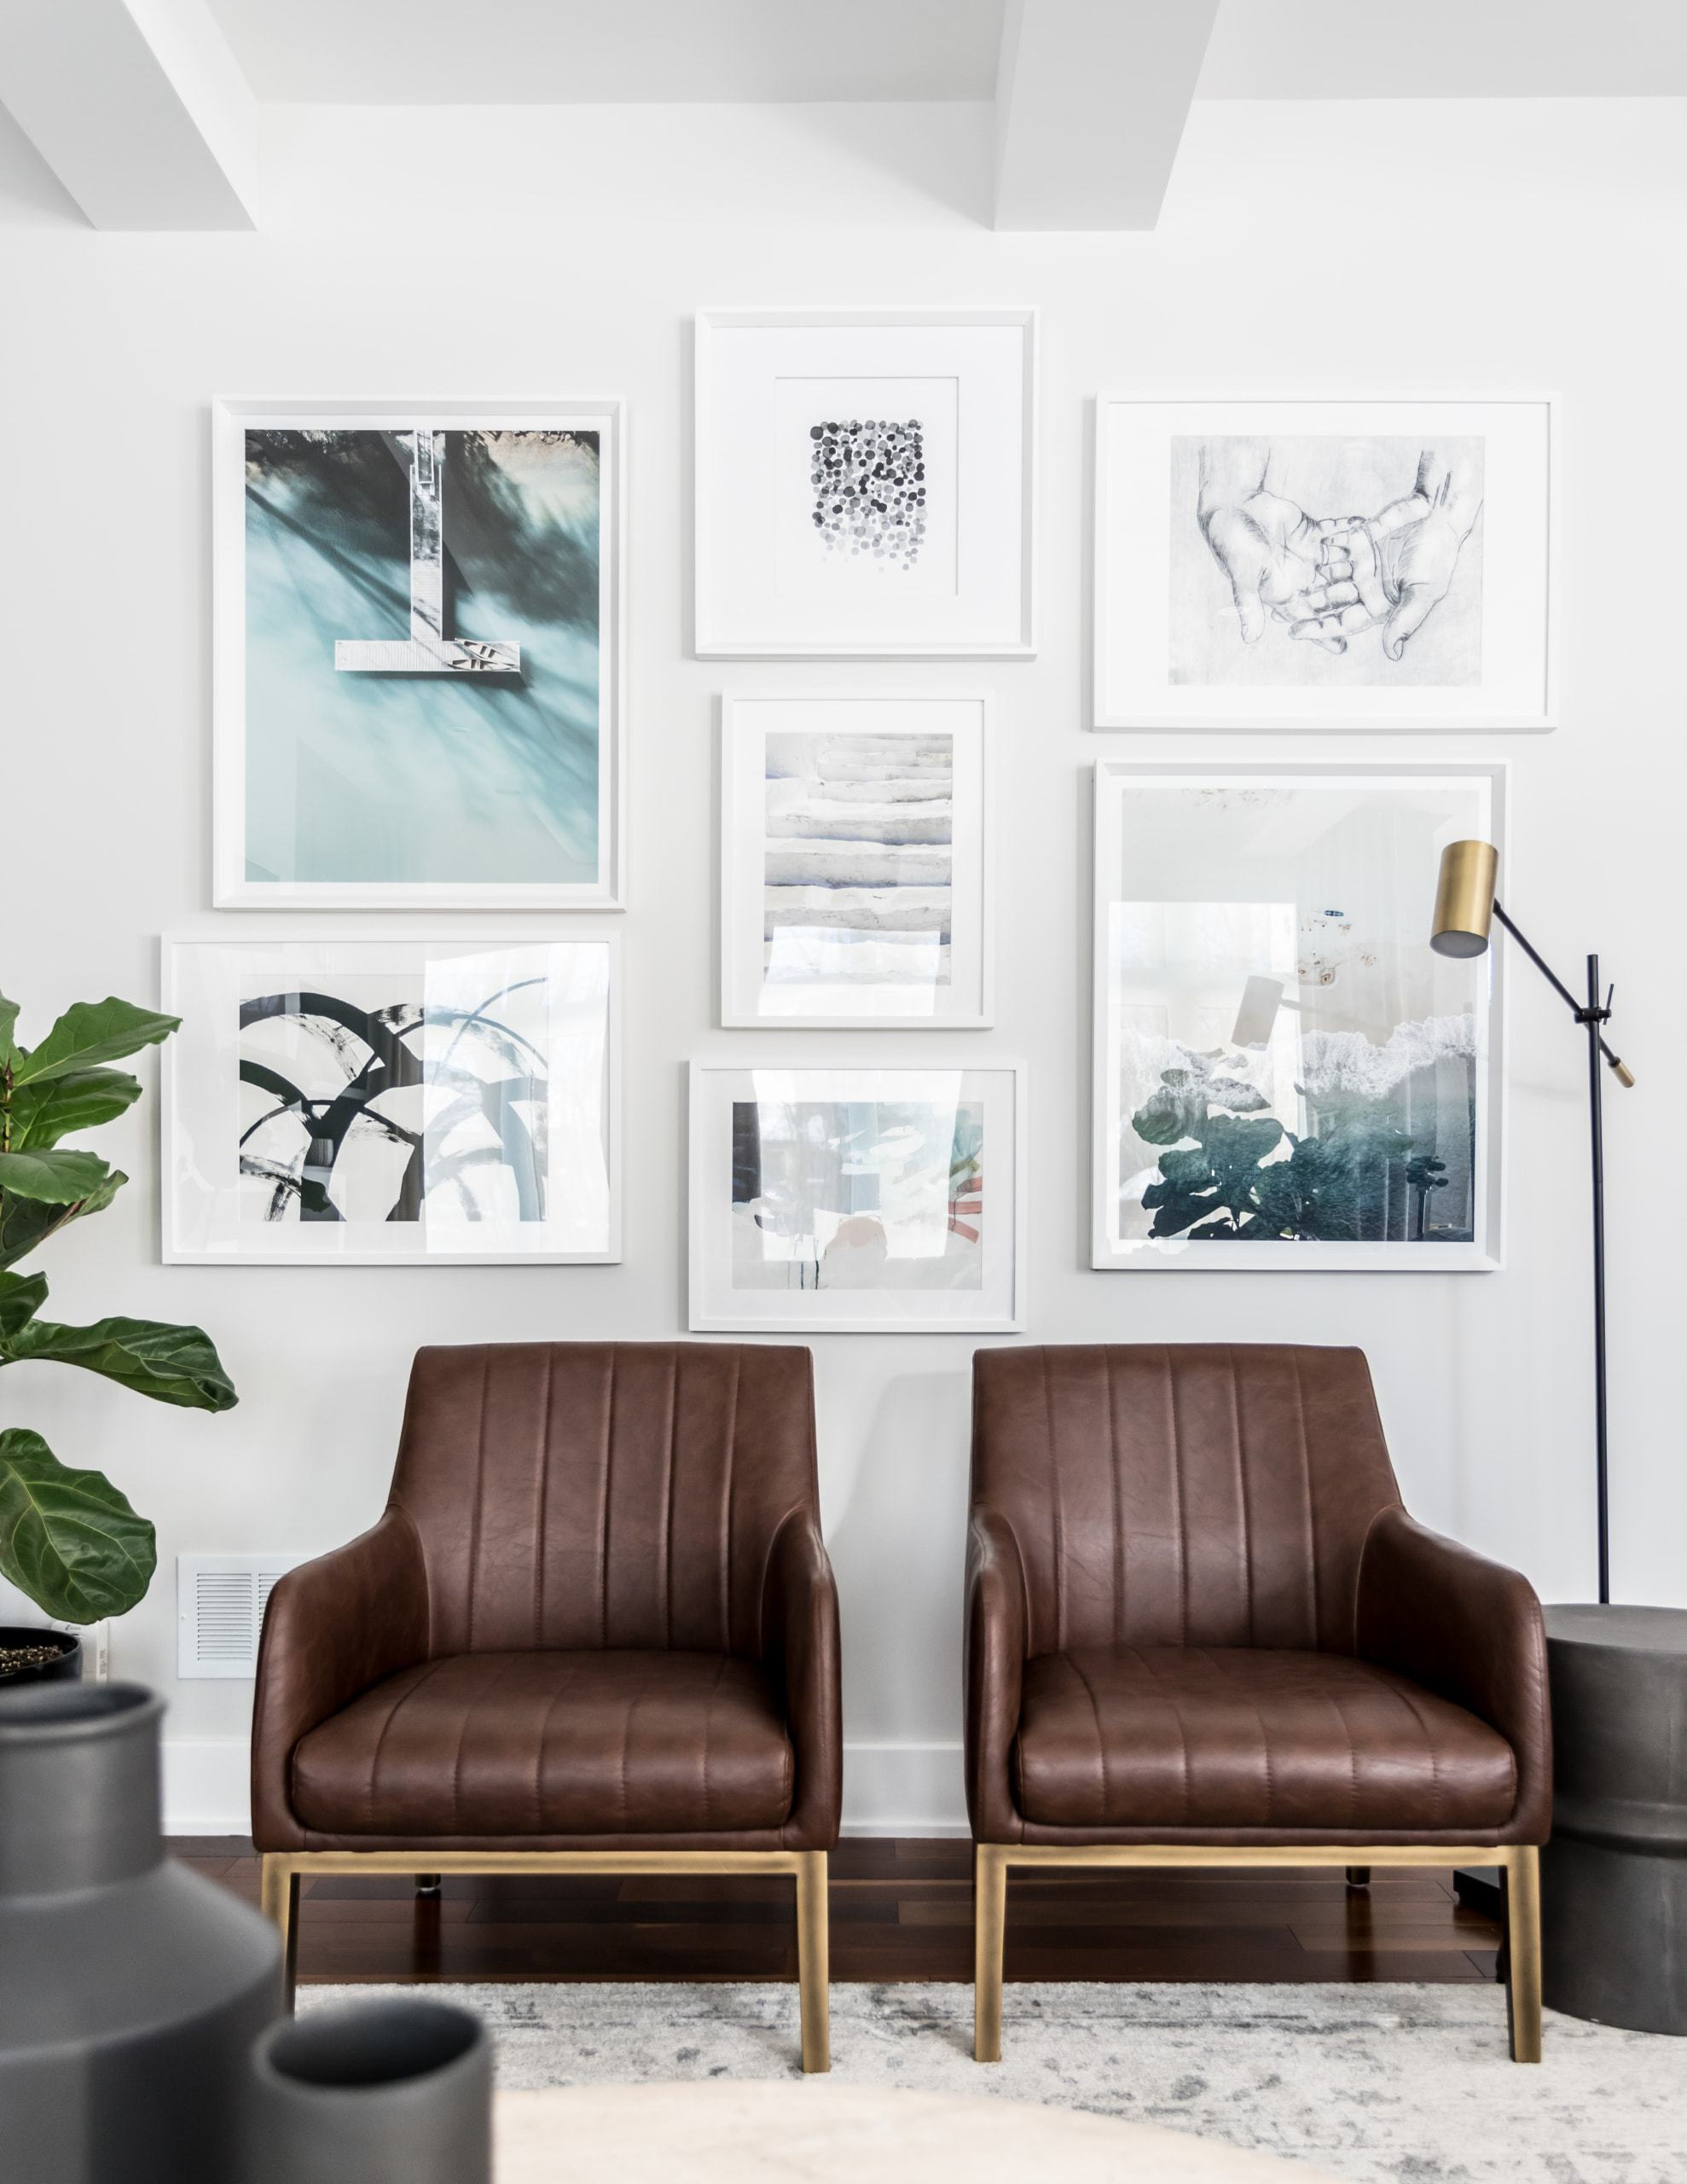 Two brown chairs with some picture on the wall behind them